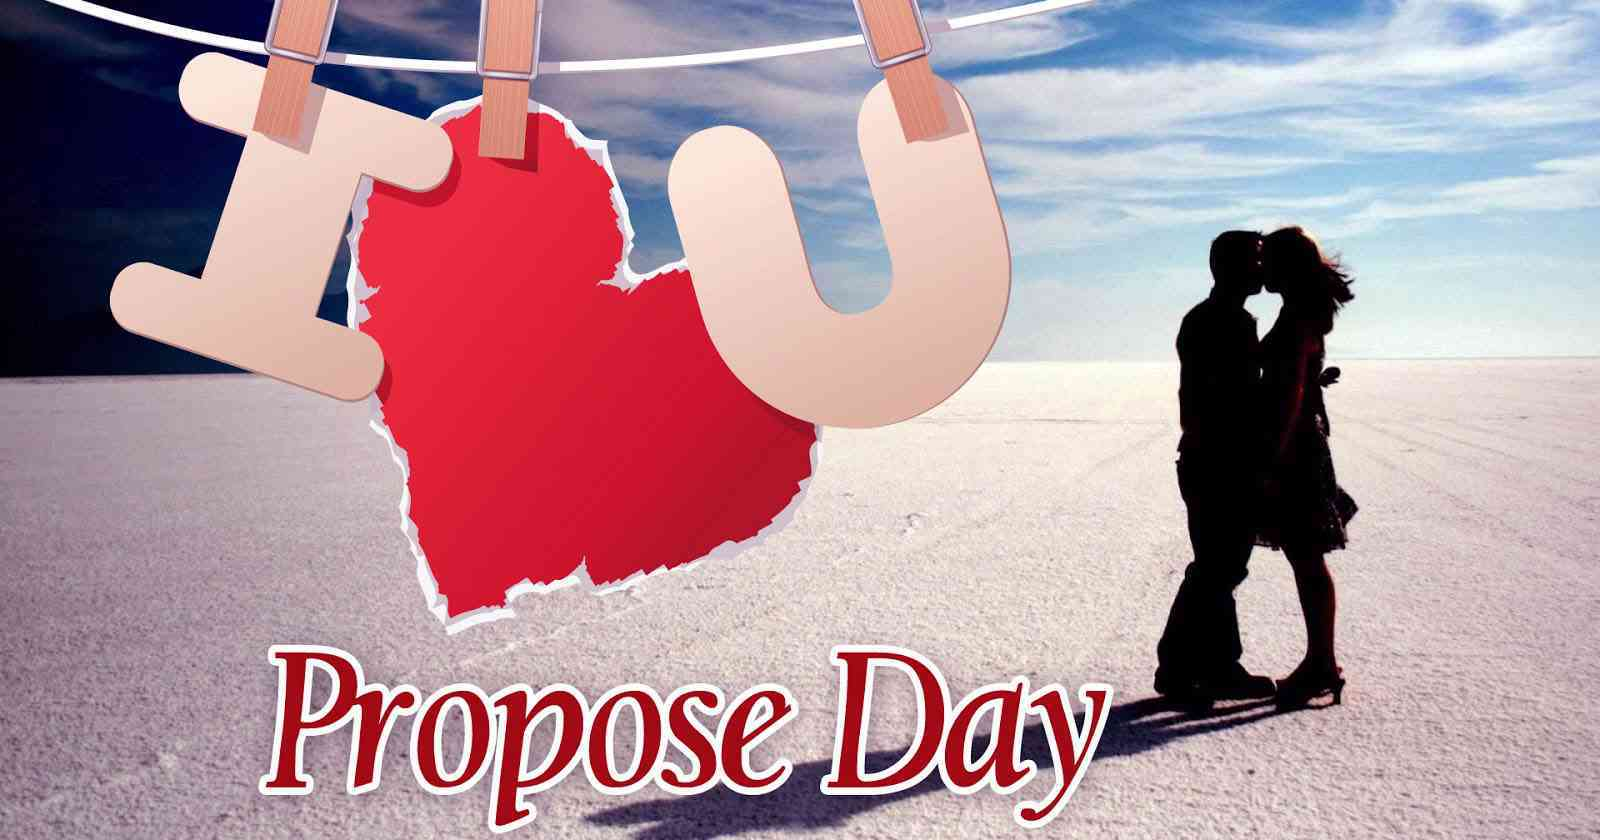 Boy Proposing Girl Hd Wallpaper 80 Most Beautiful Propose Day Wish Pictures And Images